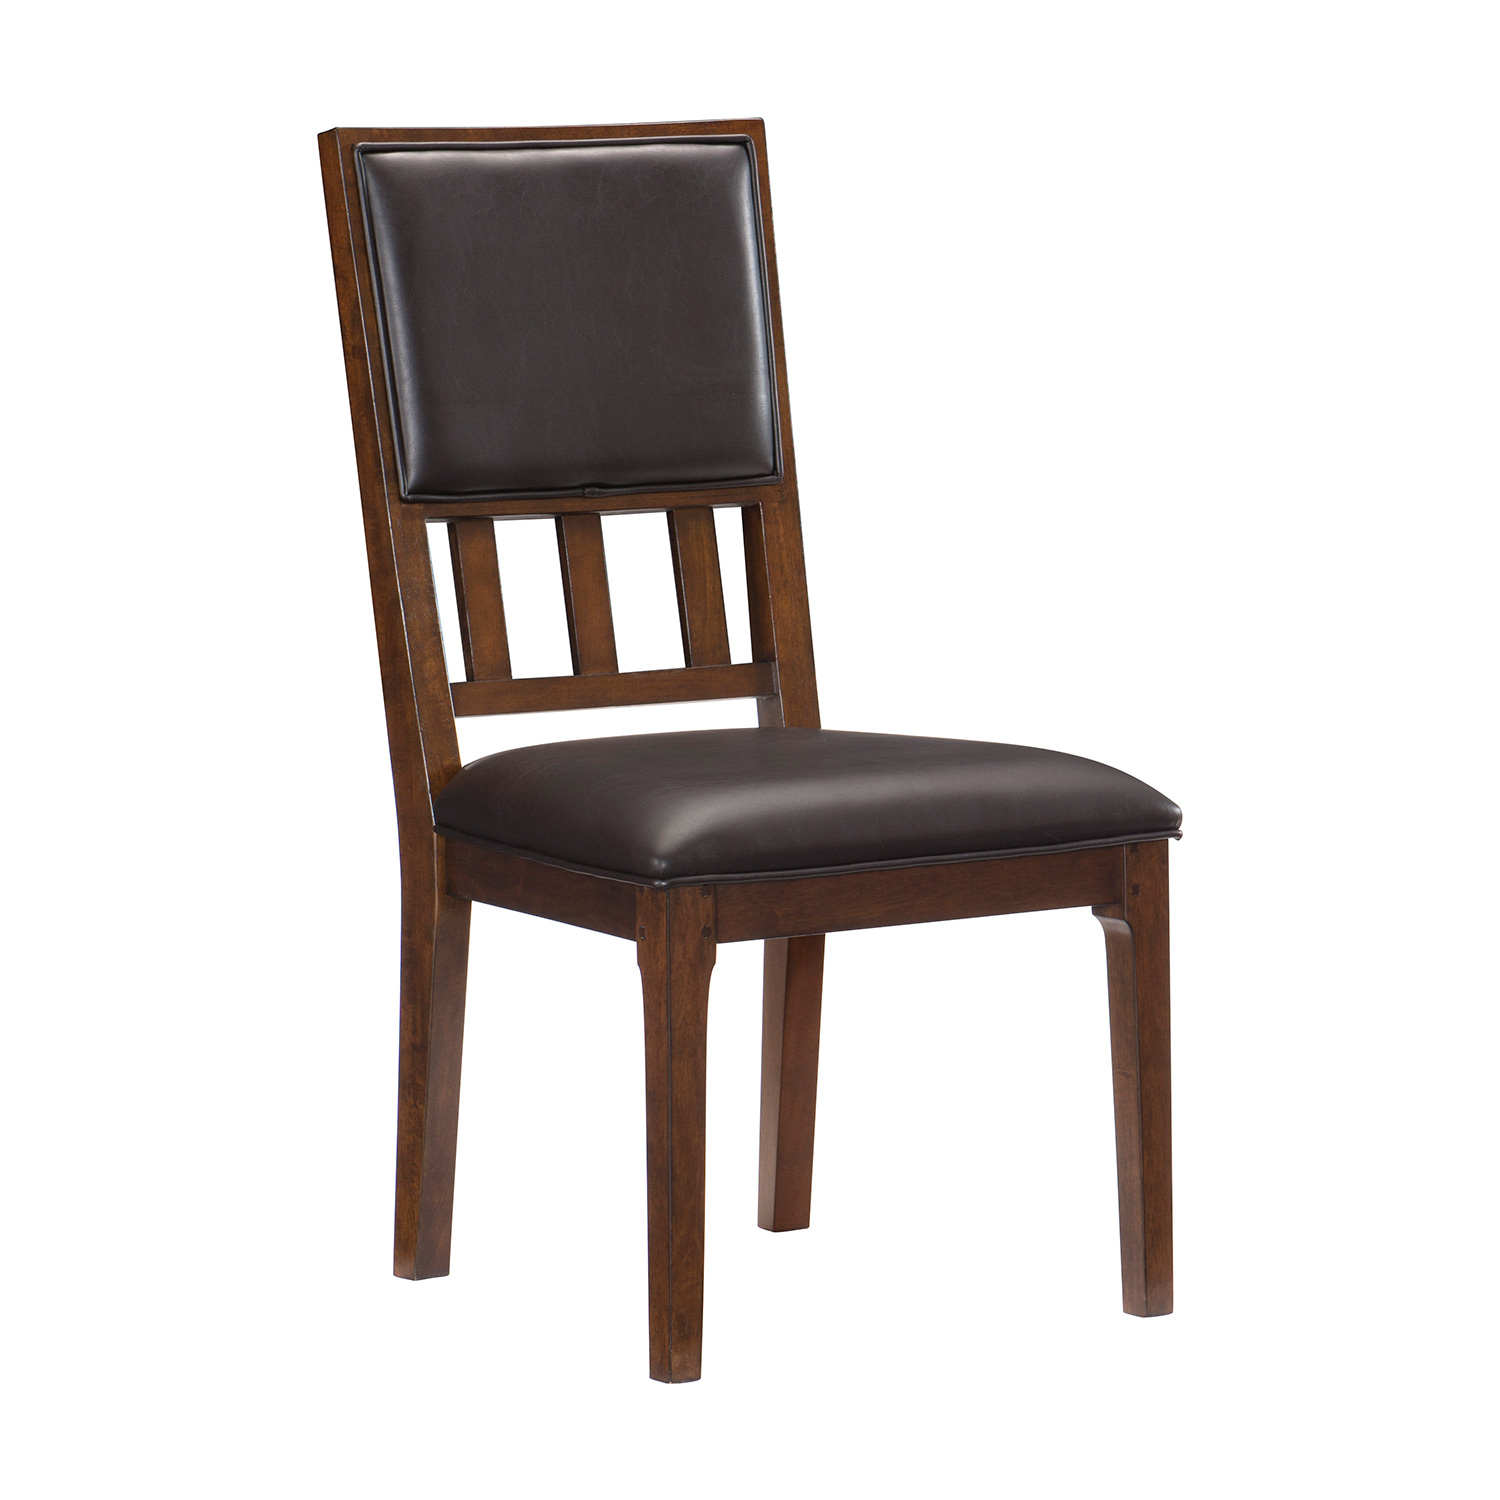 Homelegance Frazier Side Chair - Brown Cherry